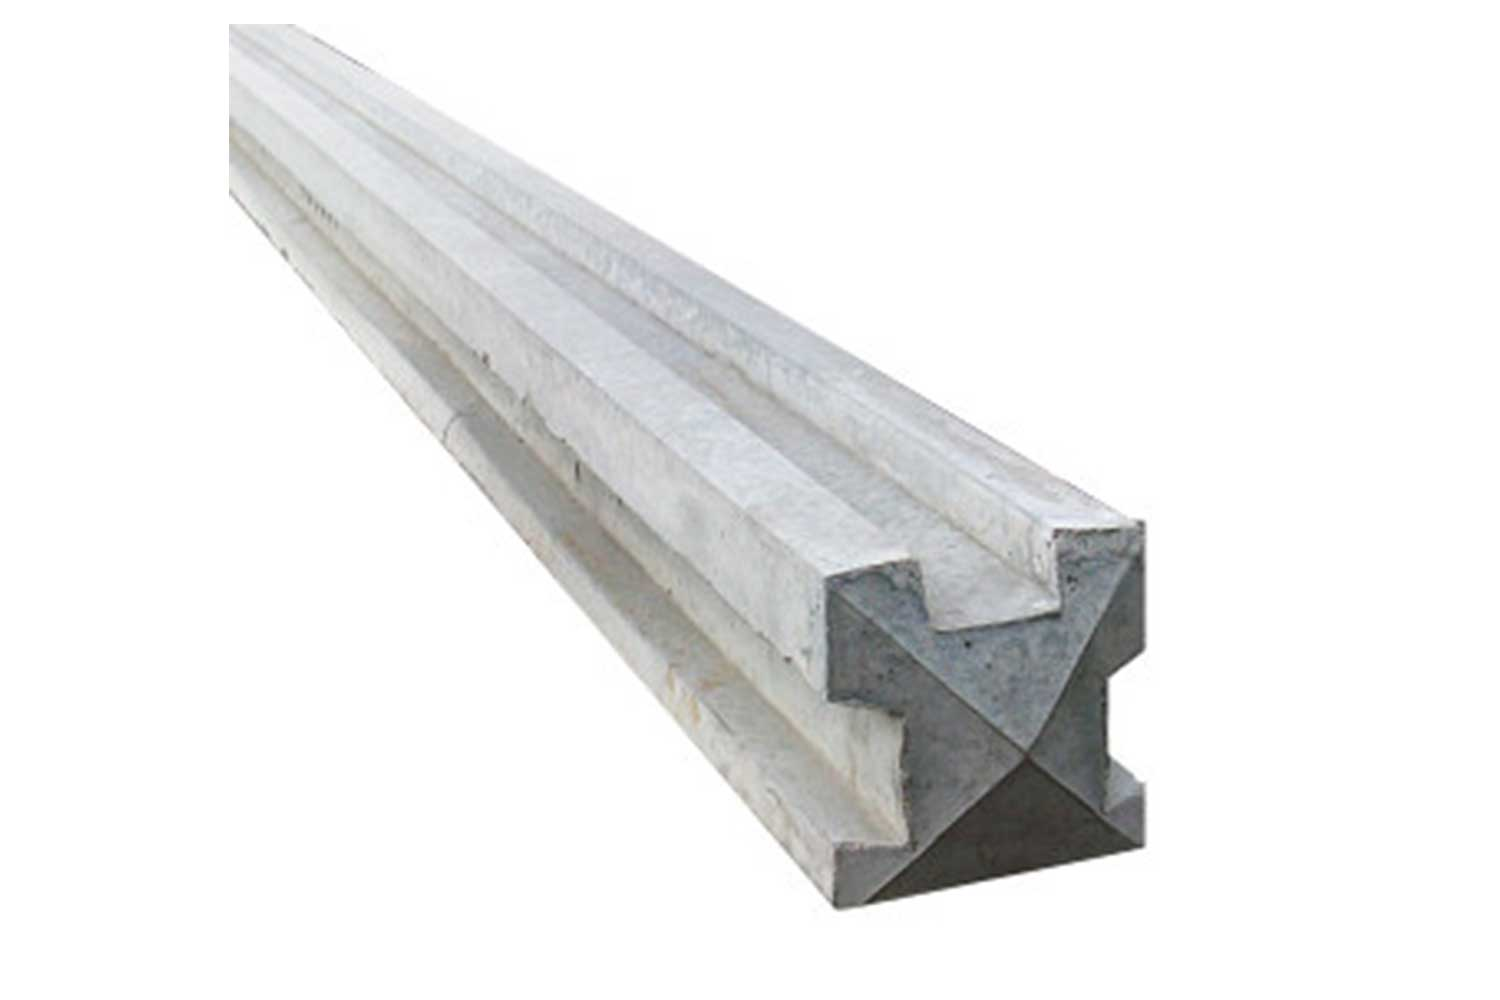 3 way slotted concrete fence post casino james bond macao